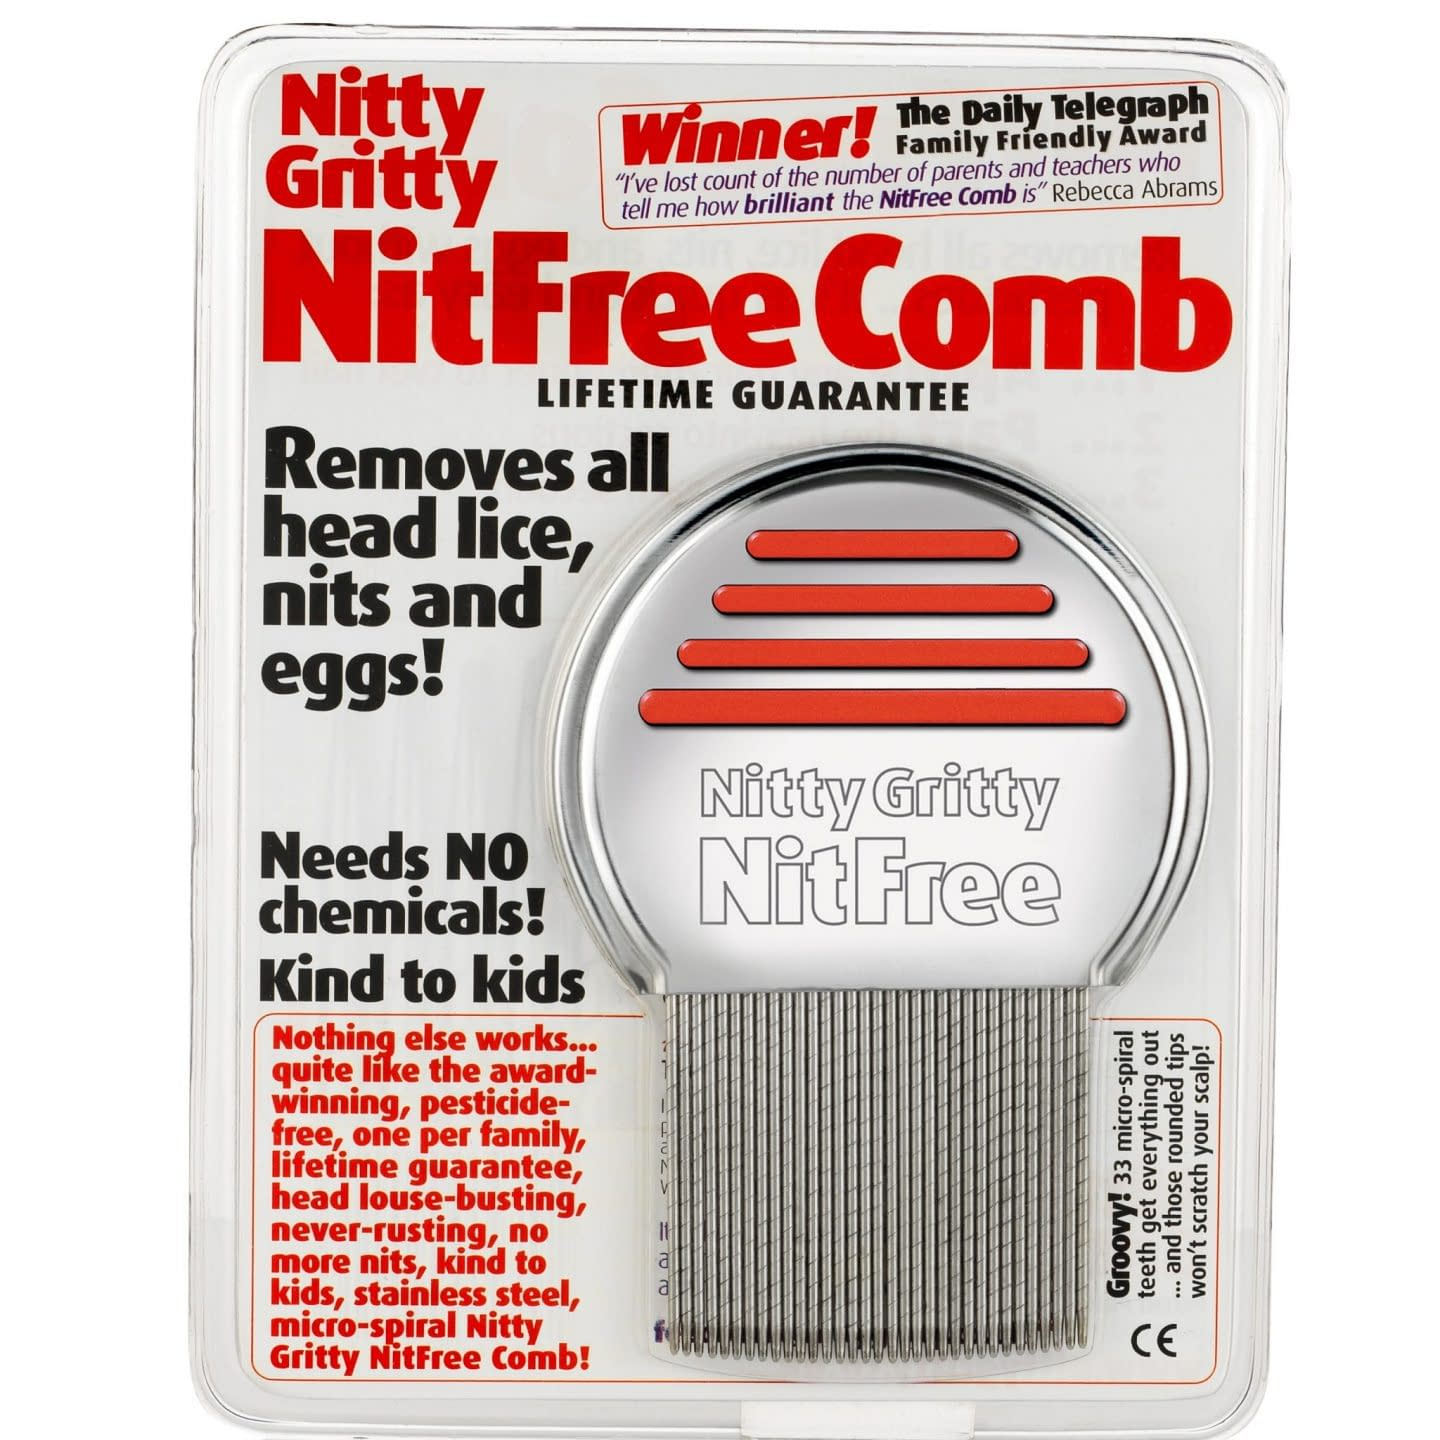 NittyGritty NitFree Comb for removing head lice and nits